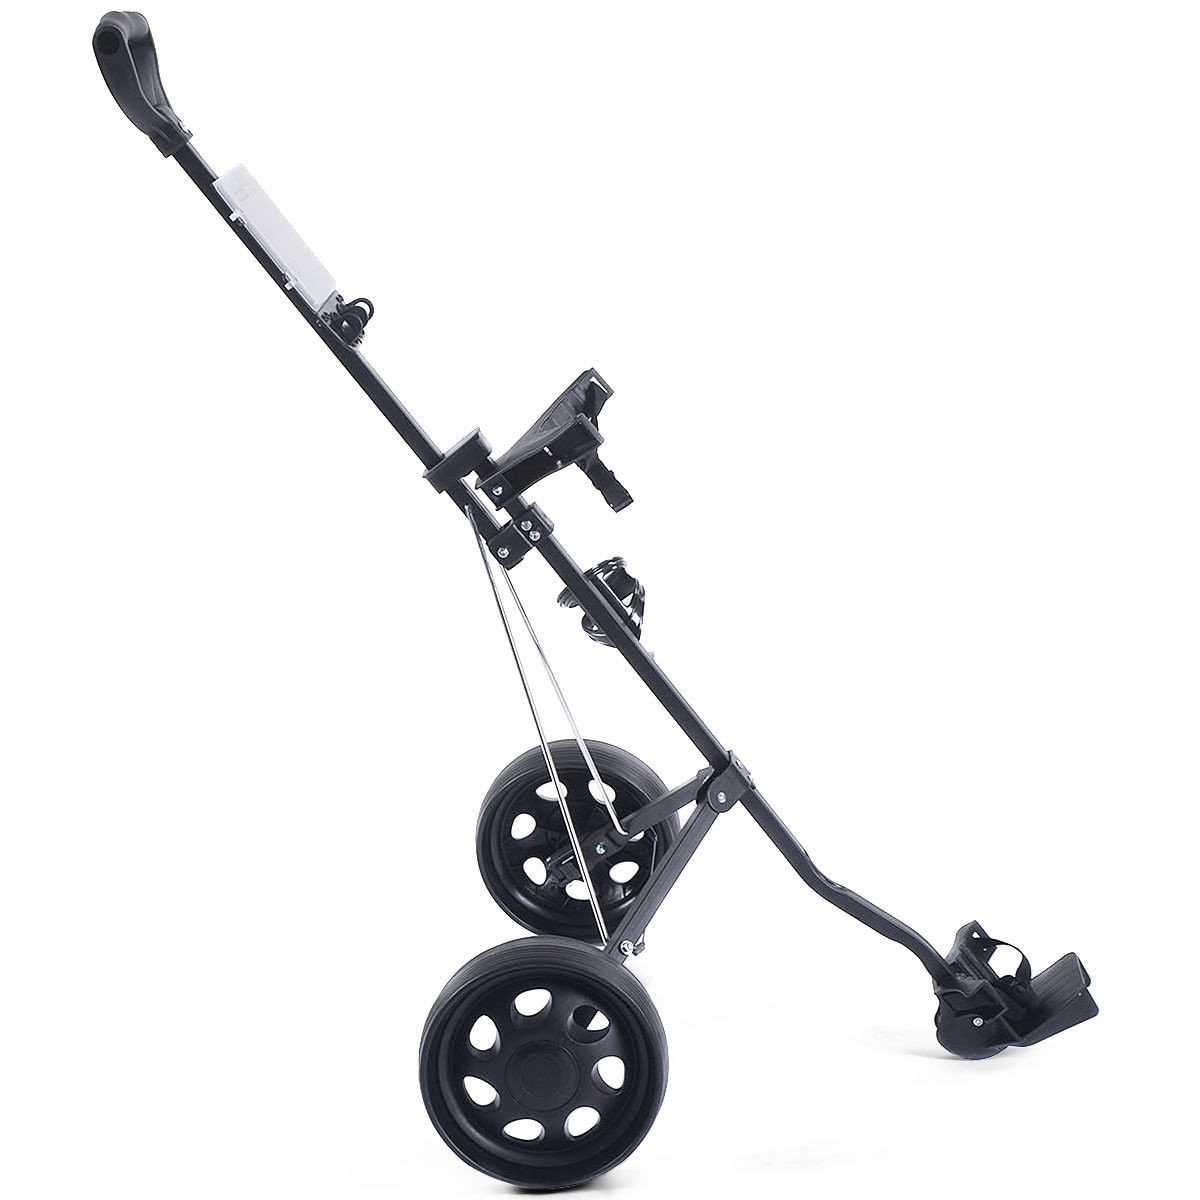 MD Group Golf Cart Holder Trolley Foldable 2 Wheels Push Pull Foldable Design Lightweight Equipment by MD Group (Image #5)